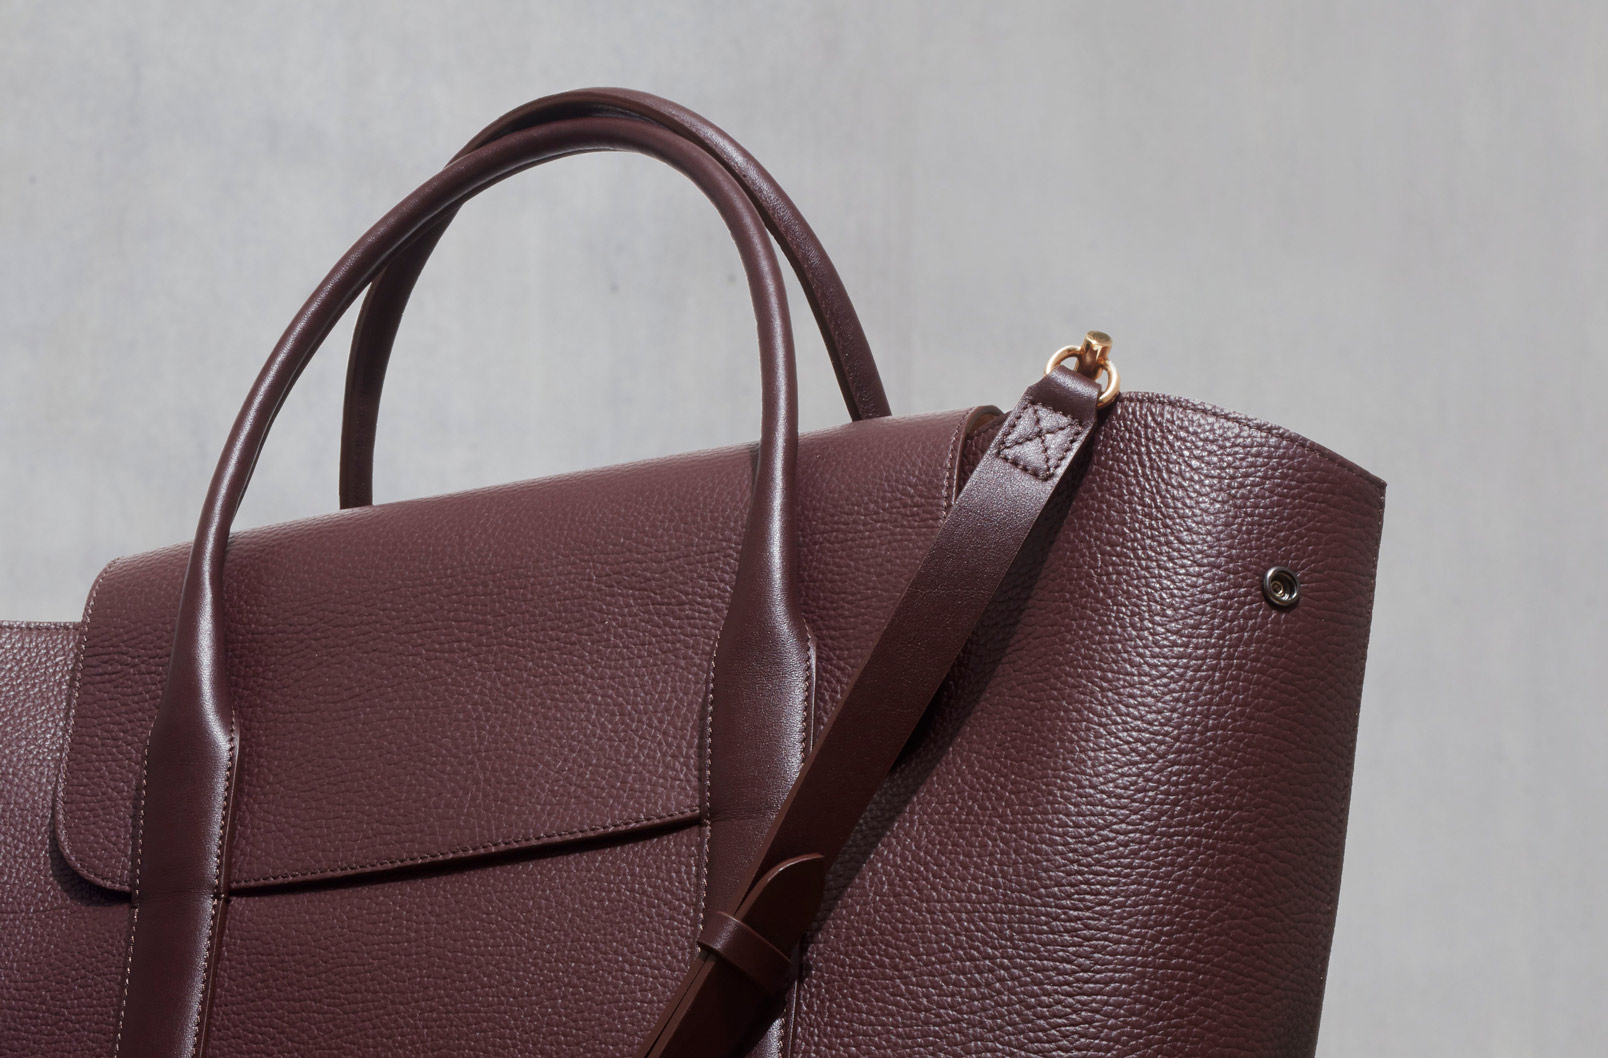 Image showing exterior snaps on Trapeze Satchel